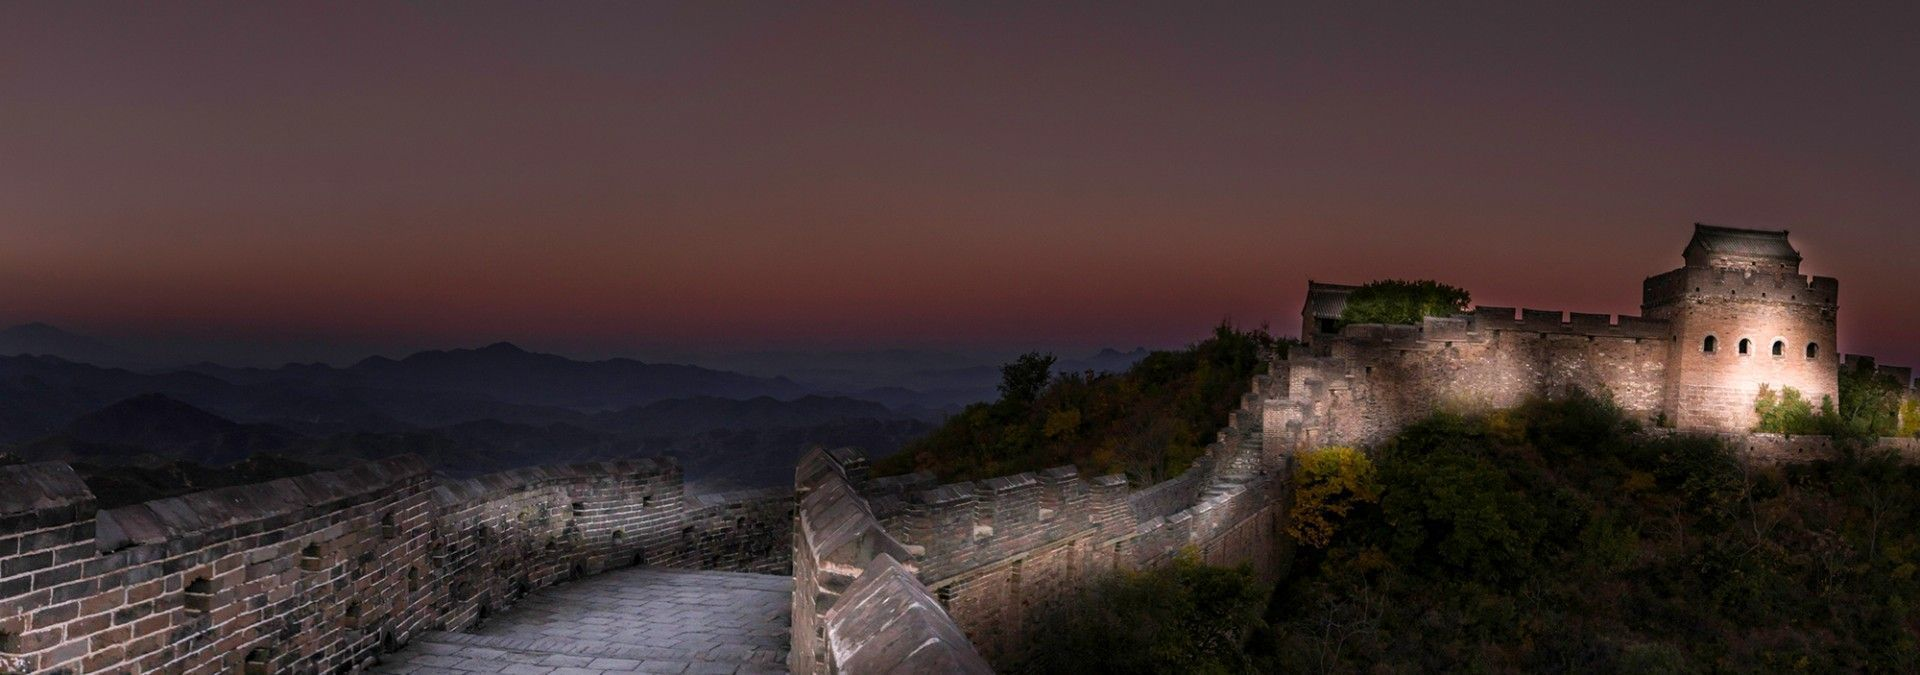 Great_Wall_of_China_Evening_Vista.jpg